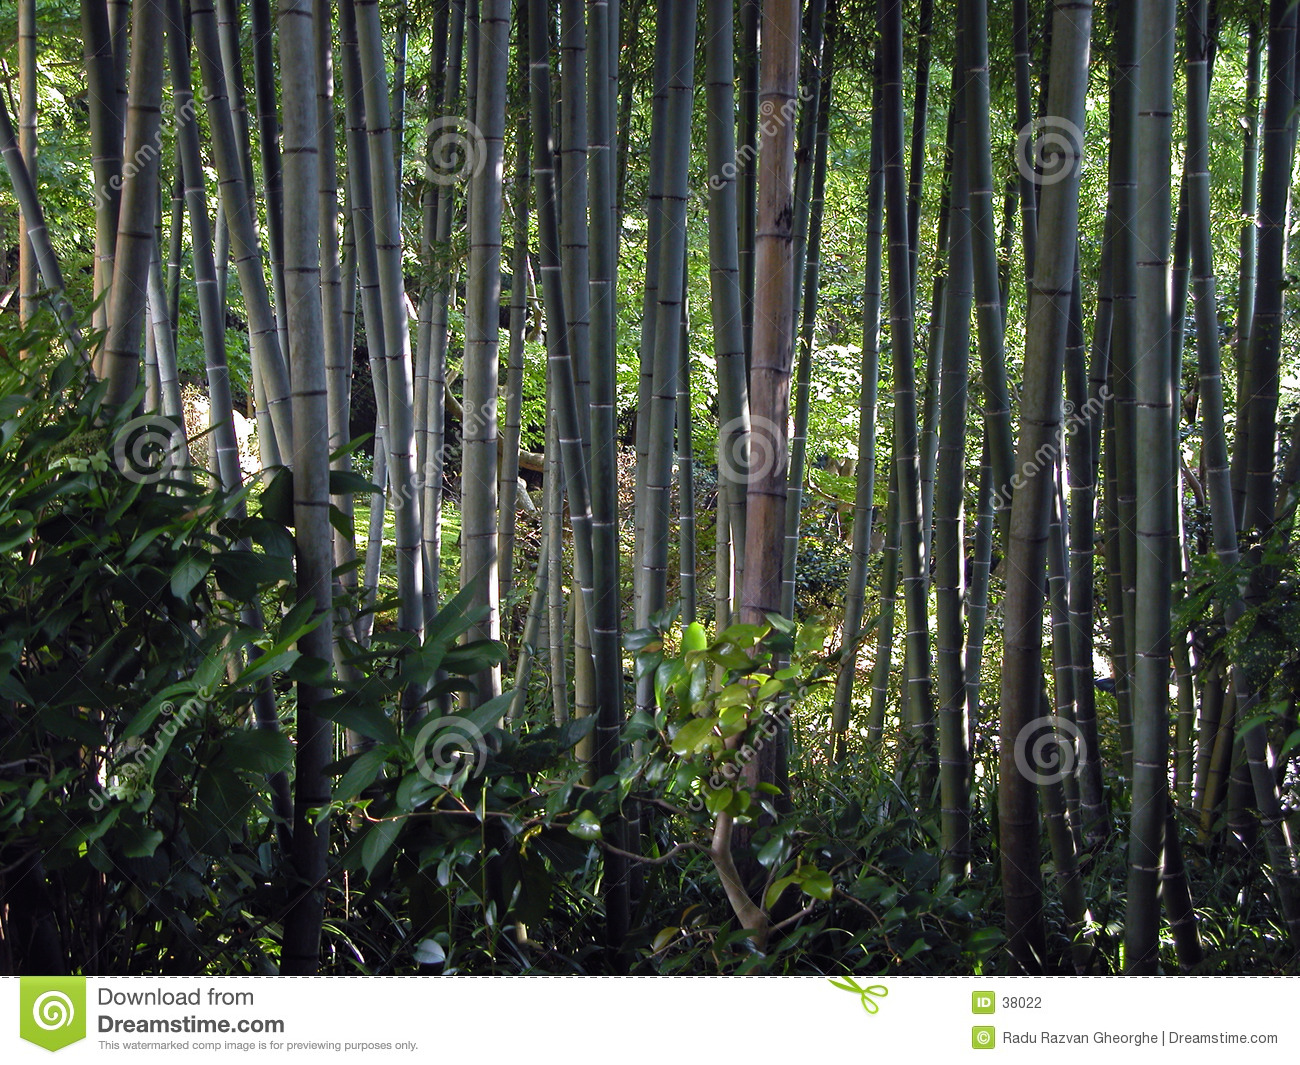 Download Bamboo forest stock photo. Image of bamboo, wildlife, exploring - 38022